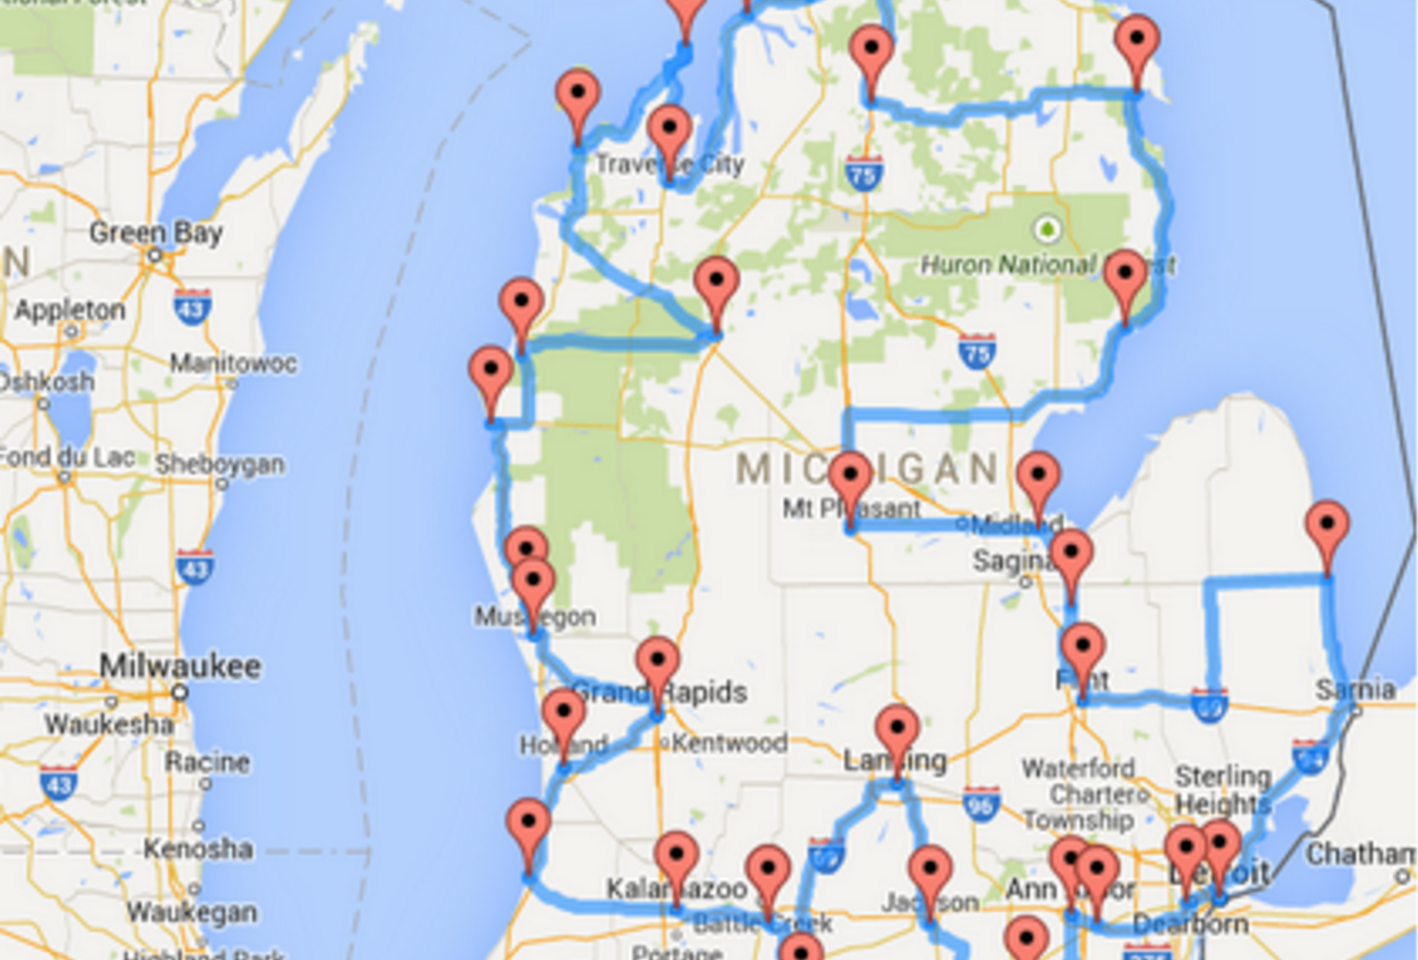 This Is The Ultimate Michigan Road Trip - Road map of michigan